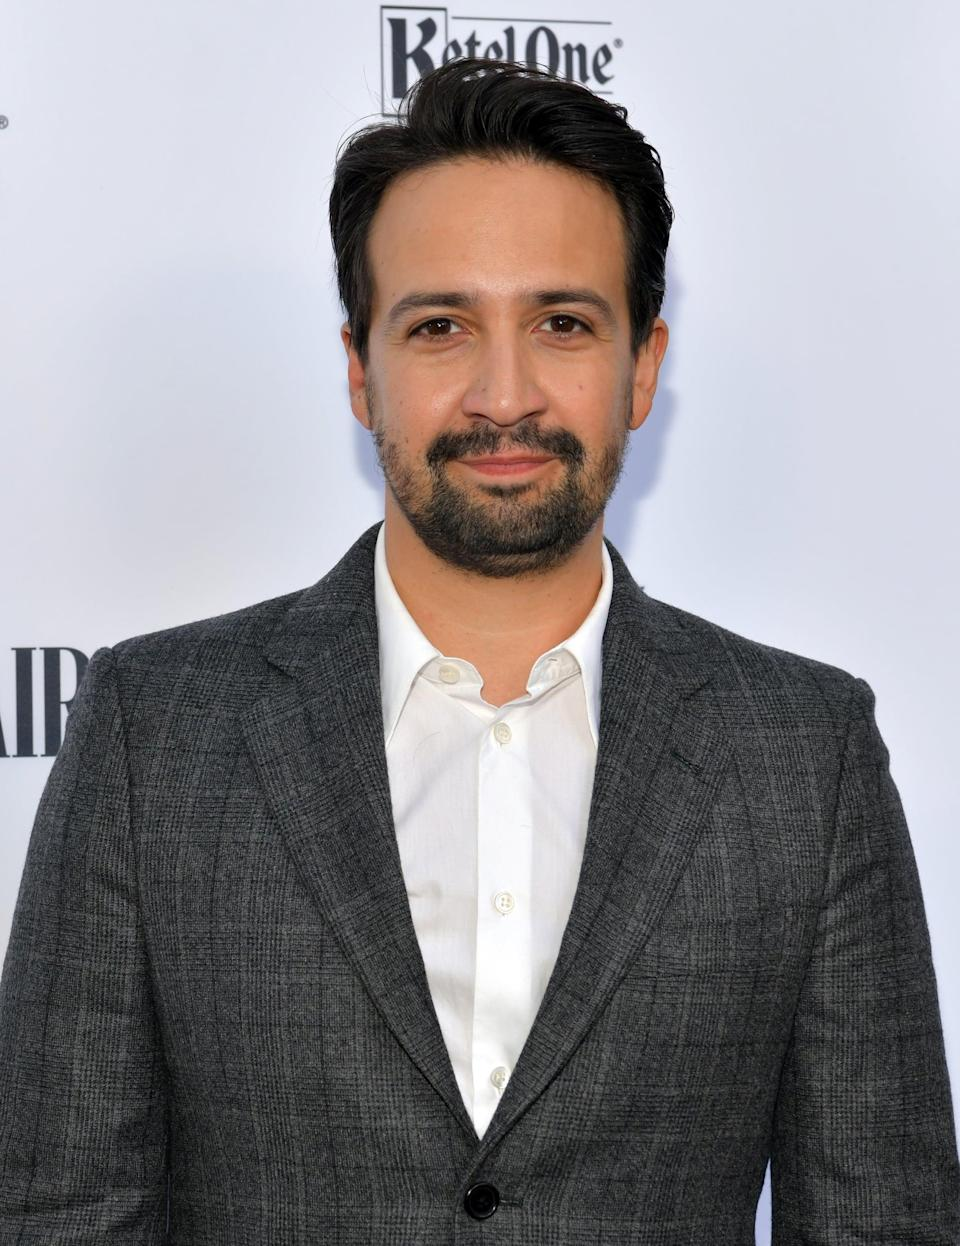 <p>The original Usnavi of the Broadway play, Miranda takes on a drastically different role in the film. The writer plays Piragüero, the owner of a small piragua stand that competes with Mister Softee.</p>